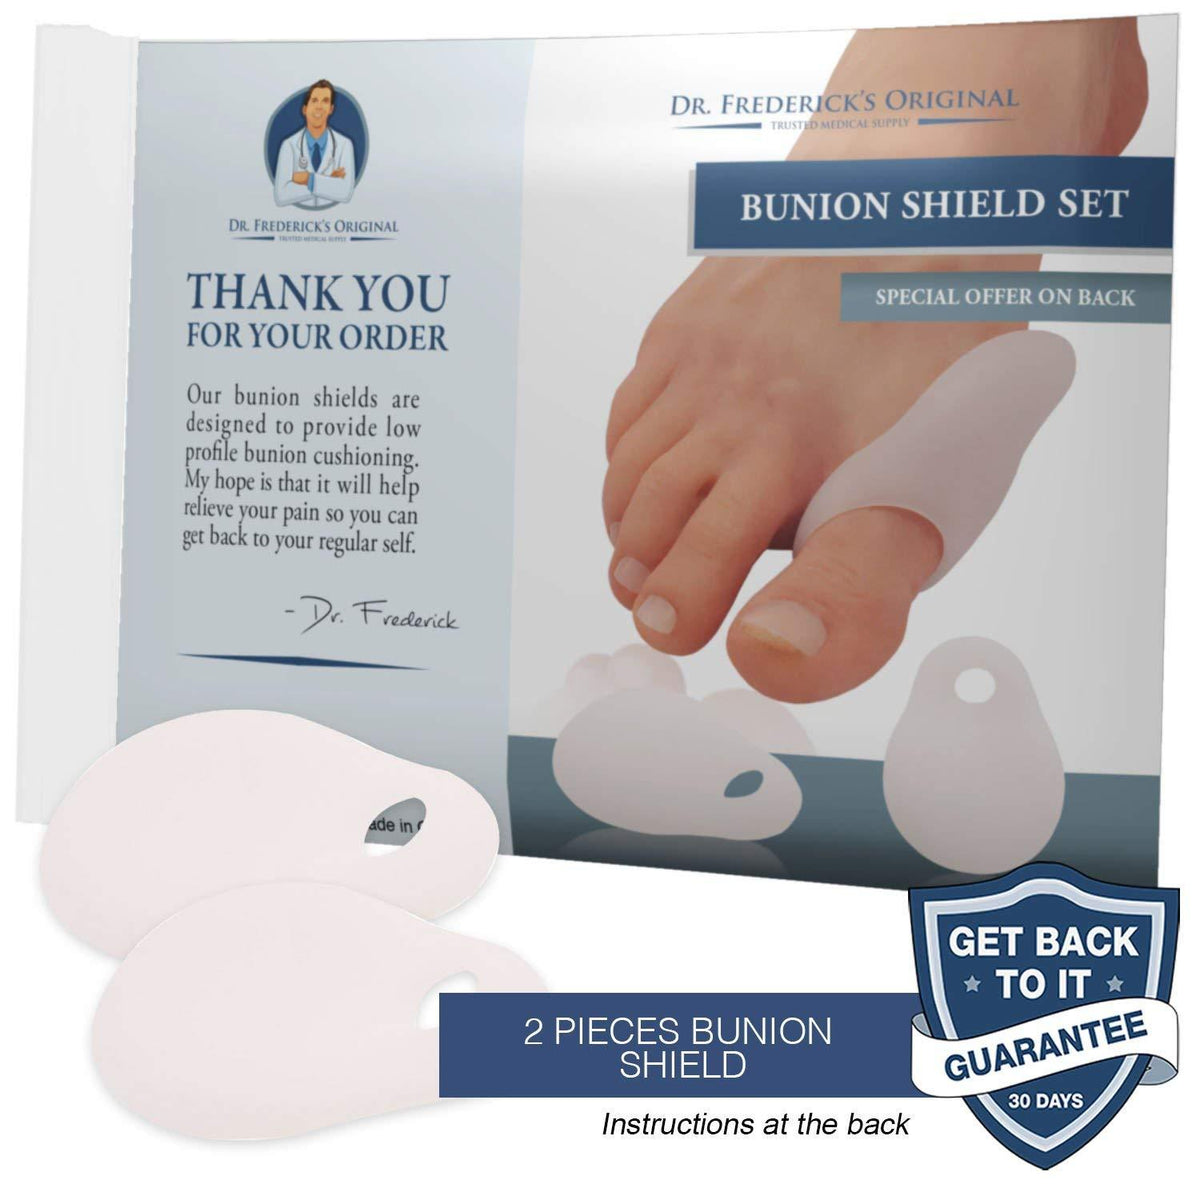 Dr. Frederick's Original Low-Profile Bunion Cushion Set -- 2 Pieces - for Targeted Cushioning of Bunions Foot Pain Dr. Frederick's Original